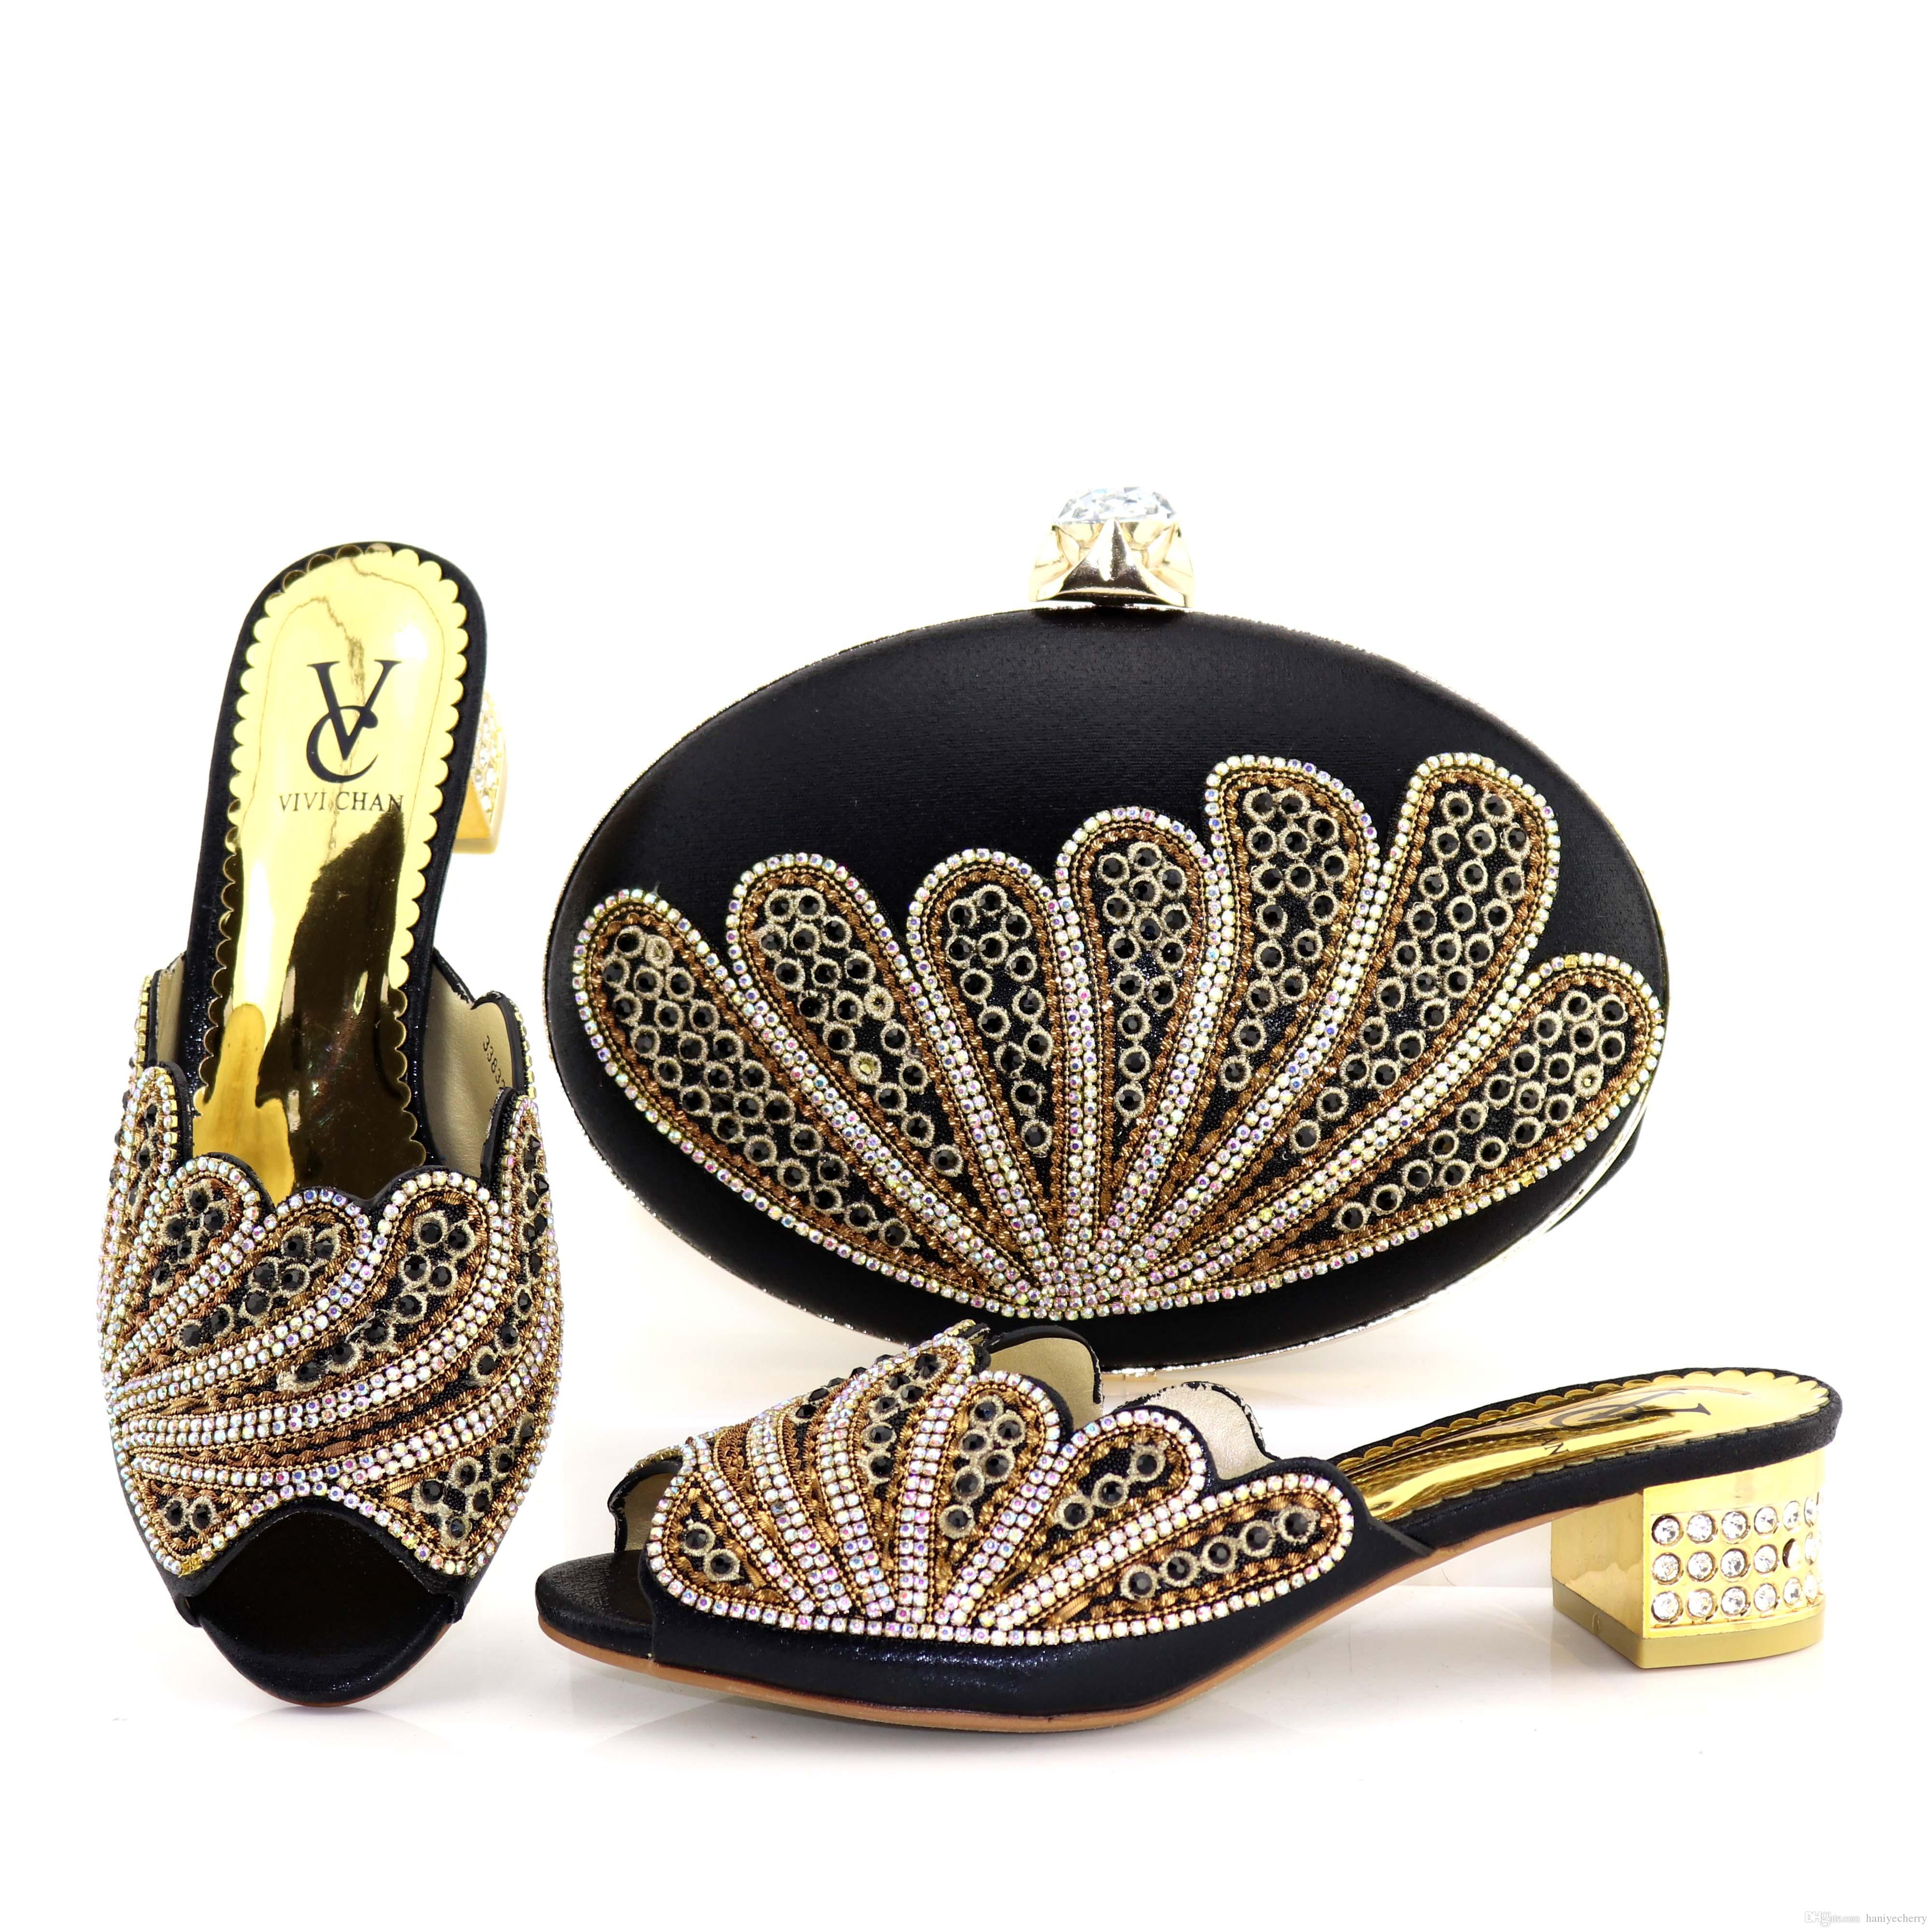 c7a02abe17 Black Color Low Heels For Wedding Fashion Shoes Matching Bag Set For Party  Shoe And Bag Set In High Quality For Wholesale Pink Shoes Salt Water  Sandals From ...